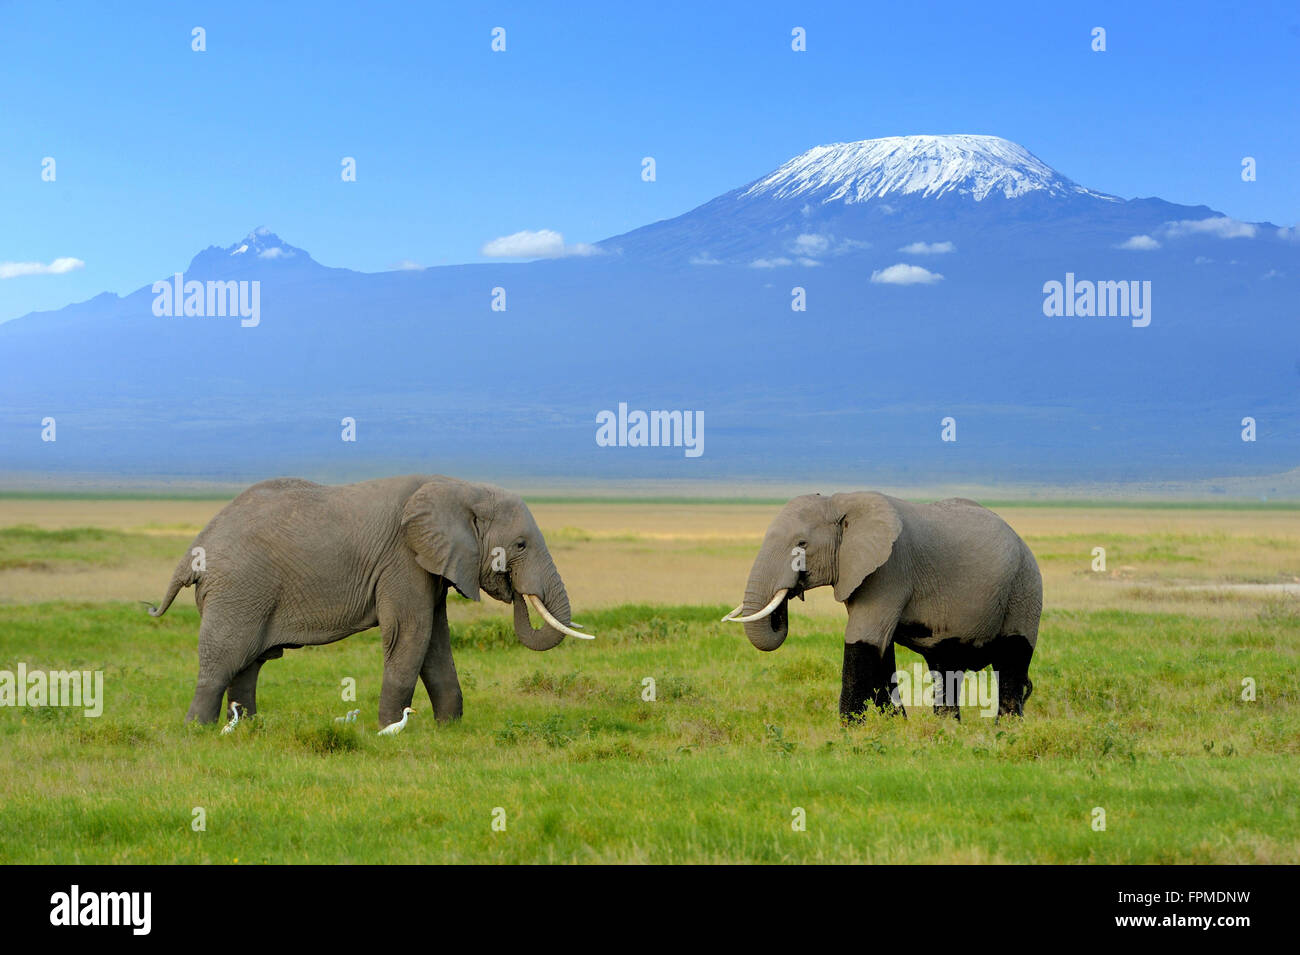 Elephant on the background of Mount Kilimanjaro in the national reserve - Stock Image